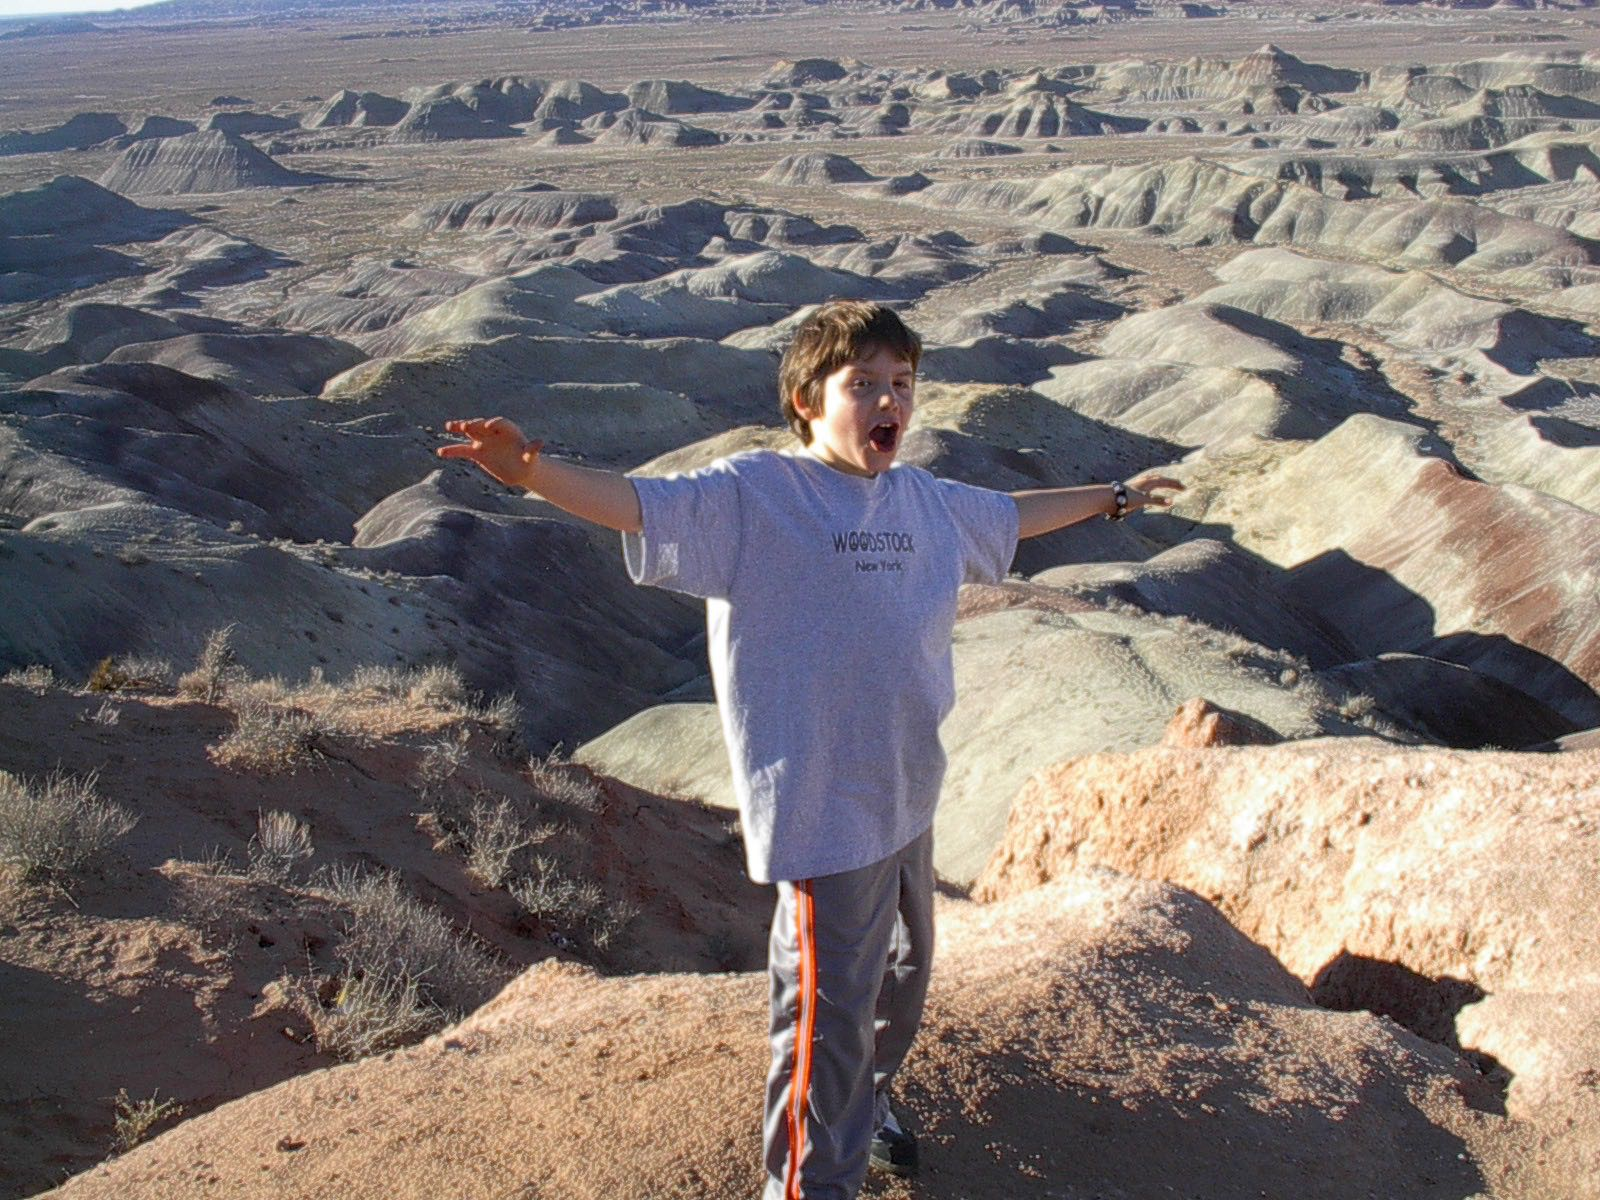 Justin At Little Painted Desert